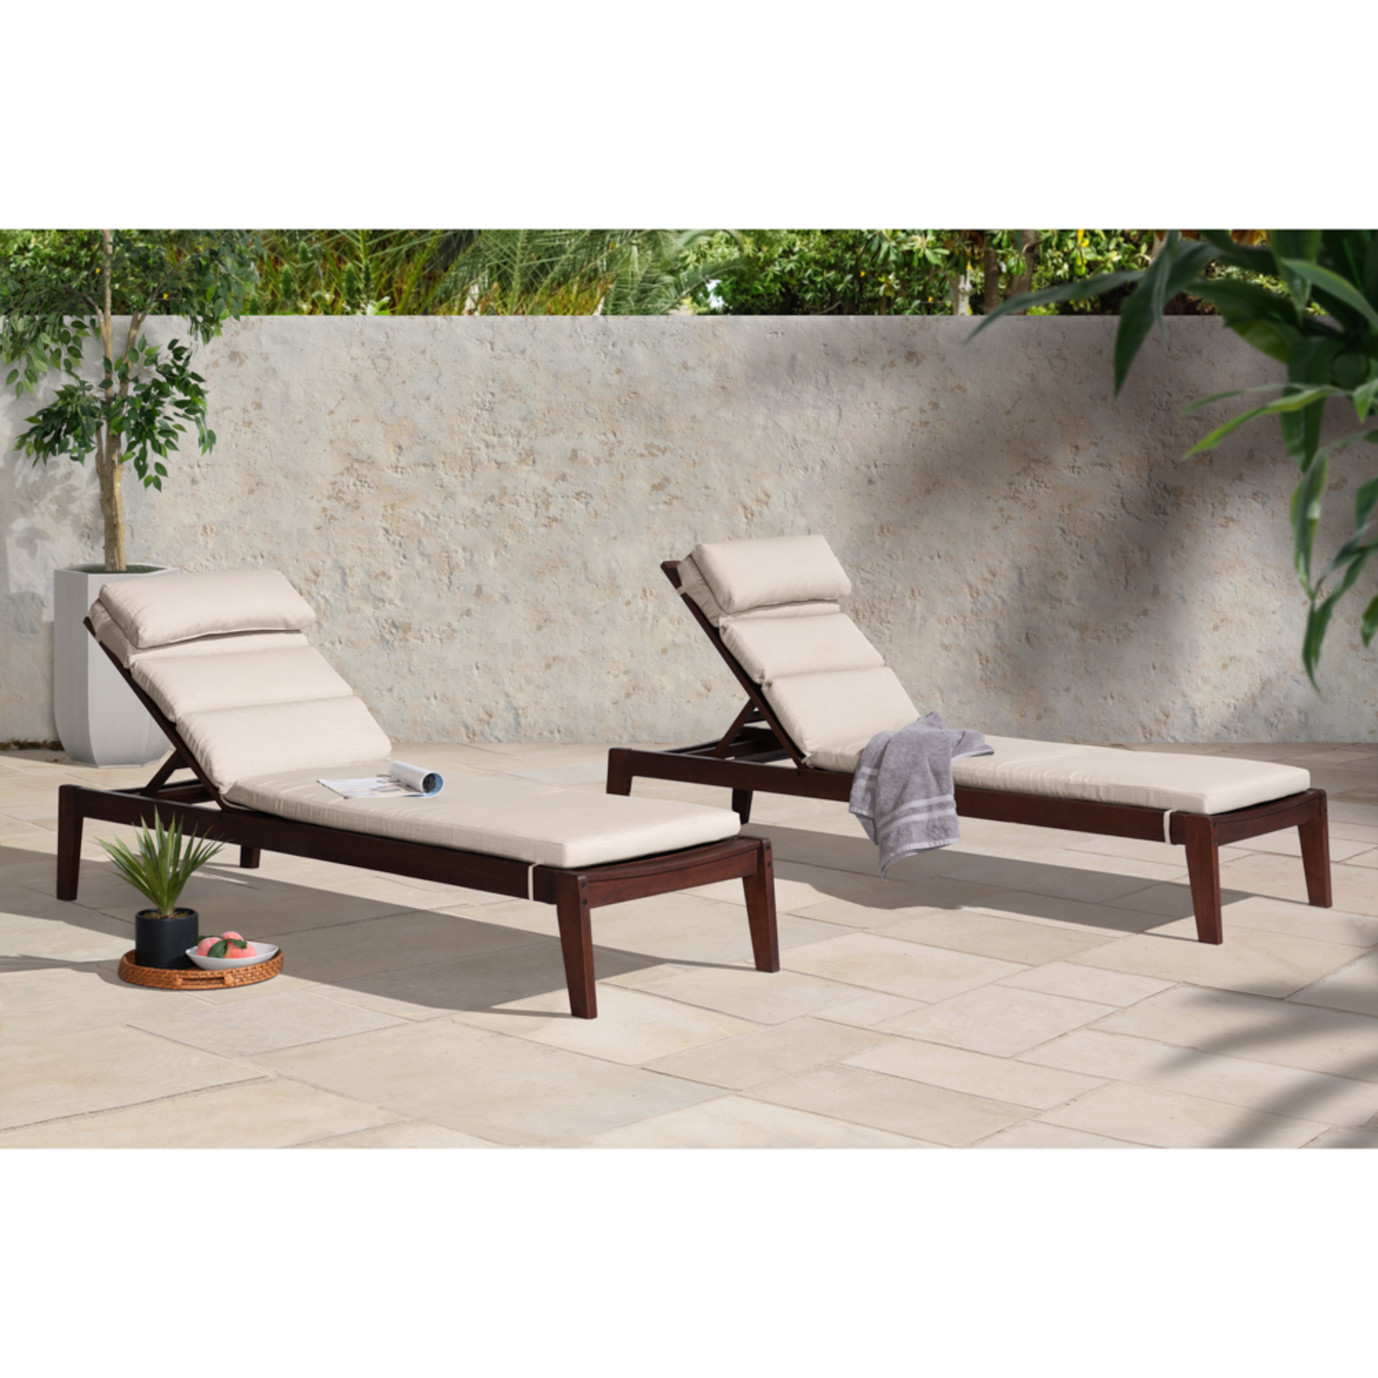 Vaughn Chaise Lounges - Slate Gray